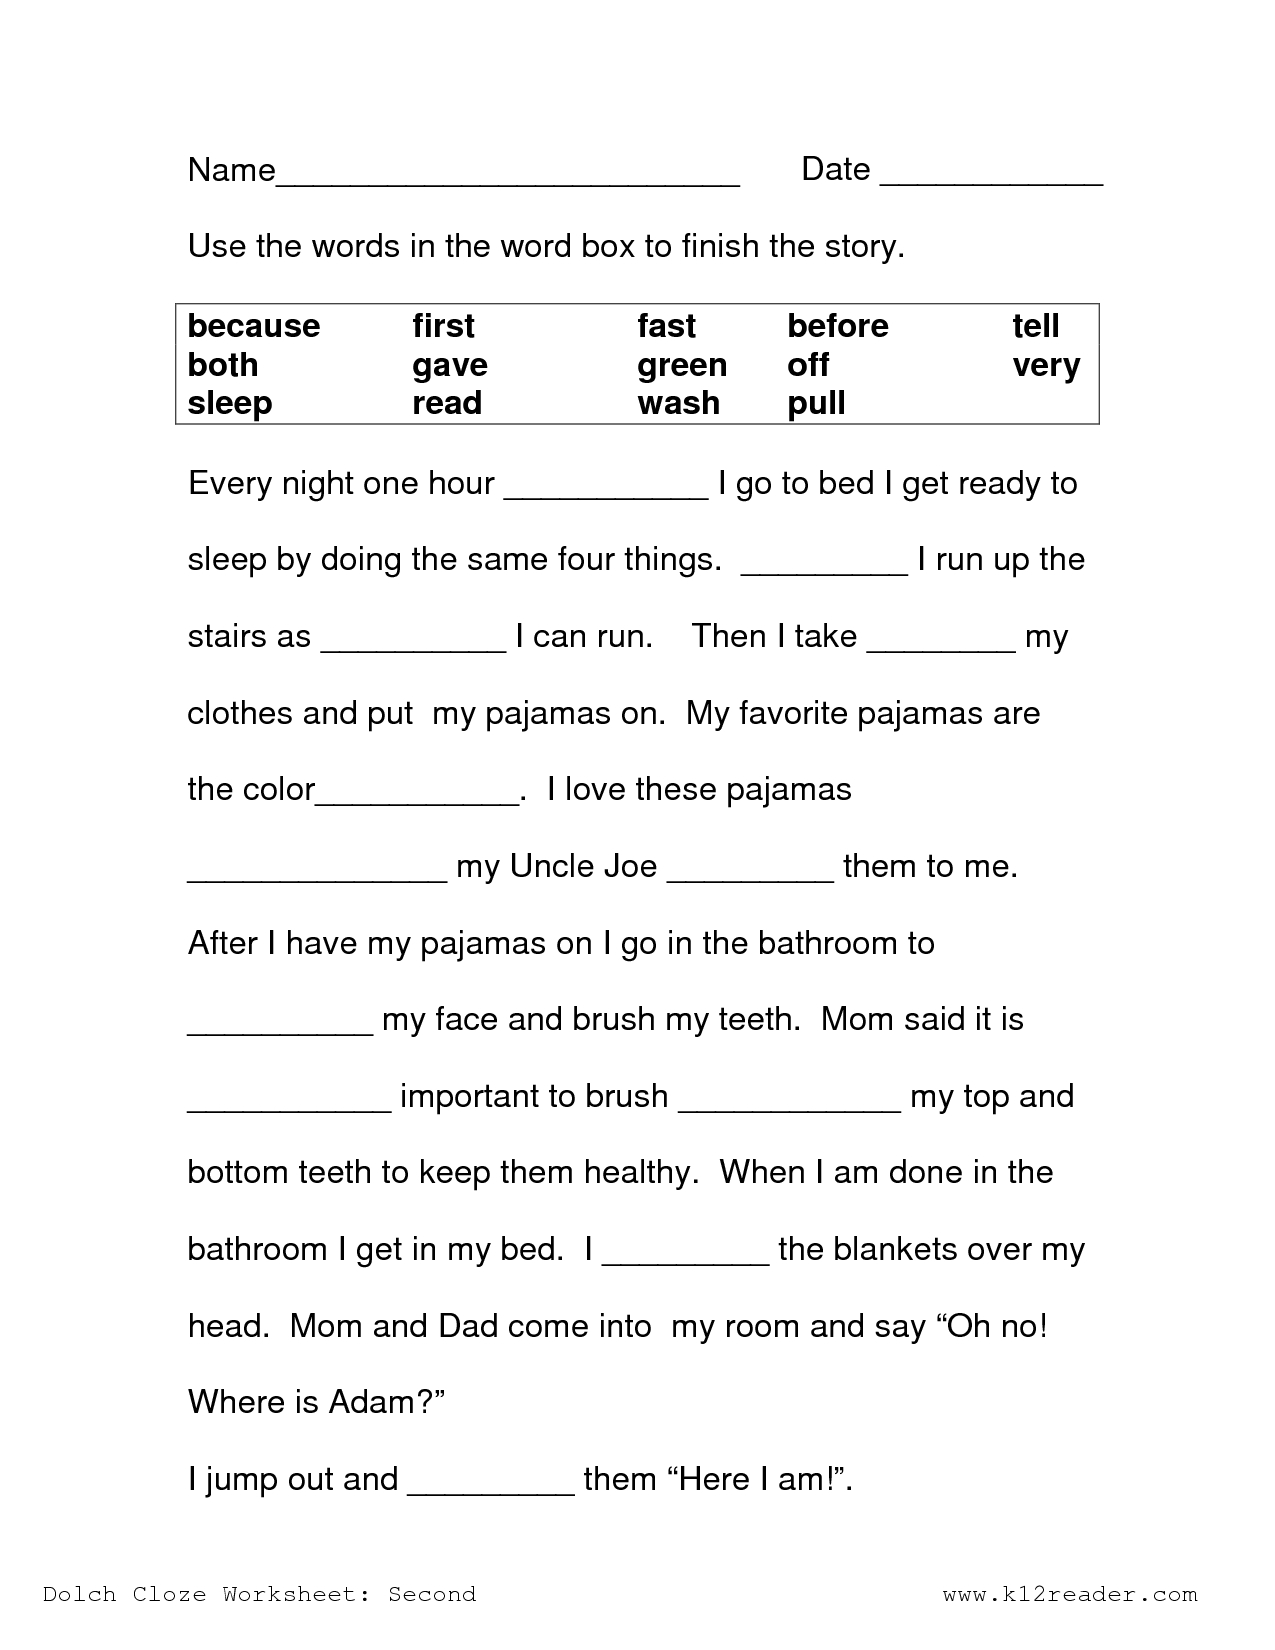 Image Result For Free Cloze Reading Passages 2Nd Grade | Printables - Free Printable Reading Games For 2Nd Graders